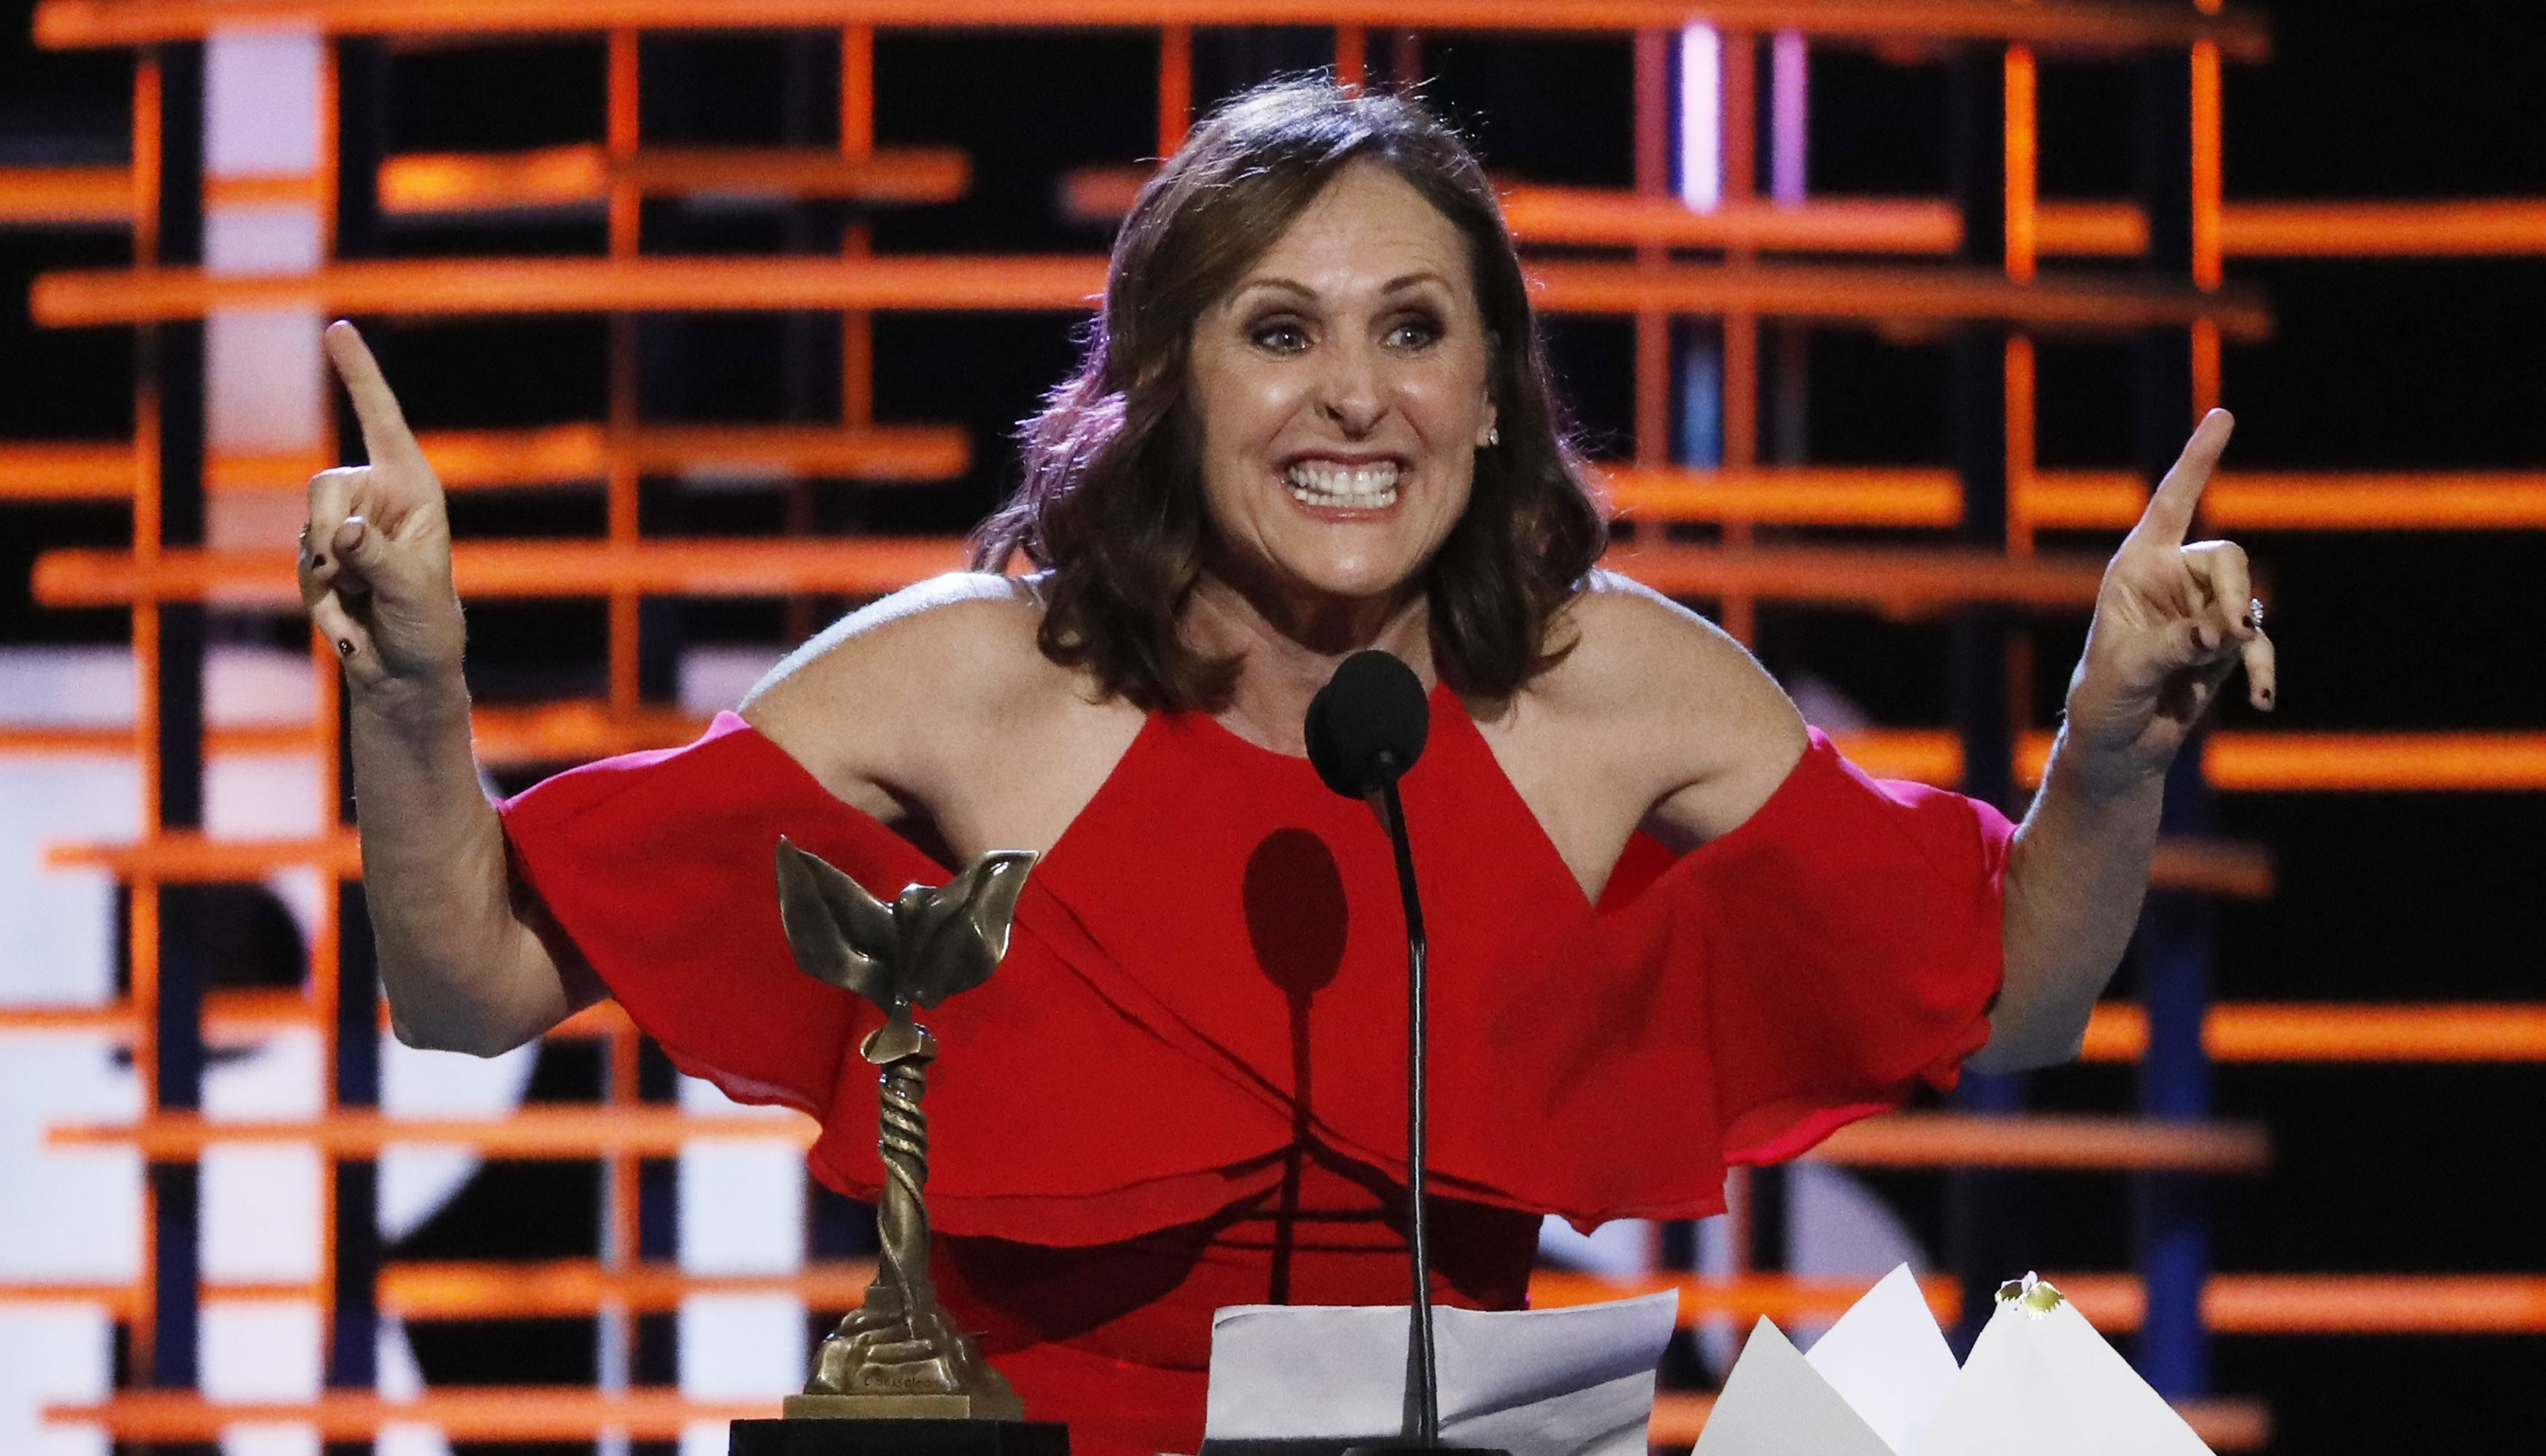 Molly Shannon accepts her award for Best Supporting Female for